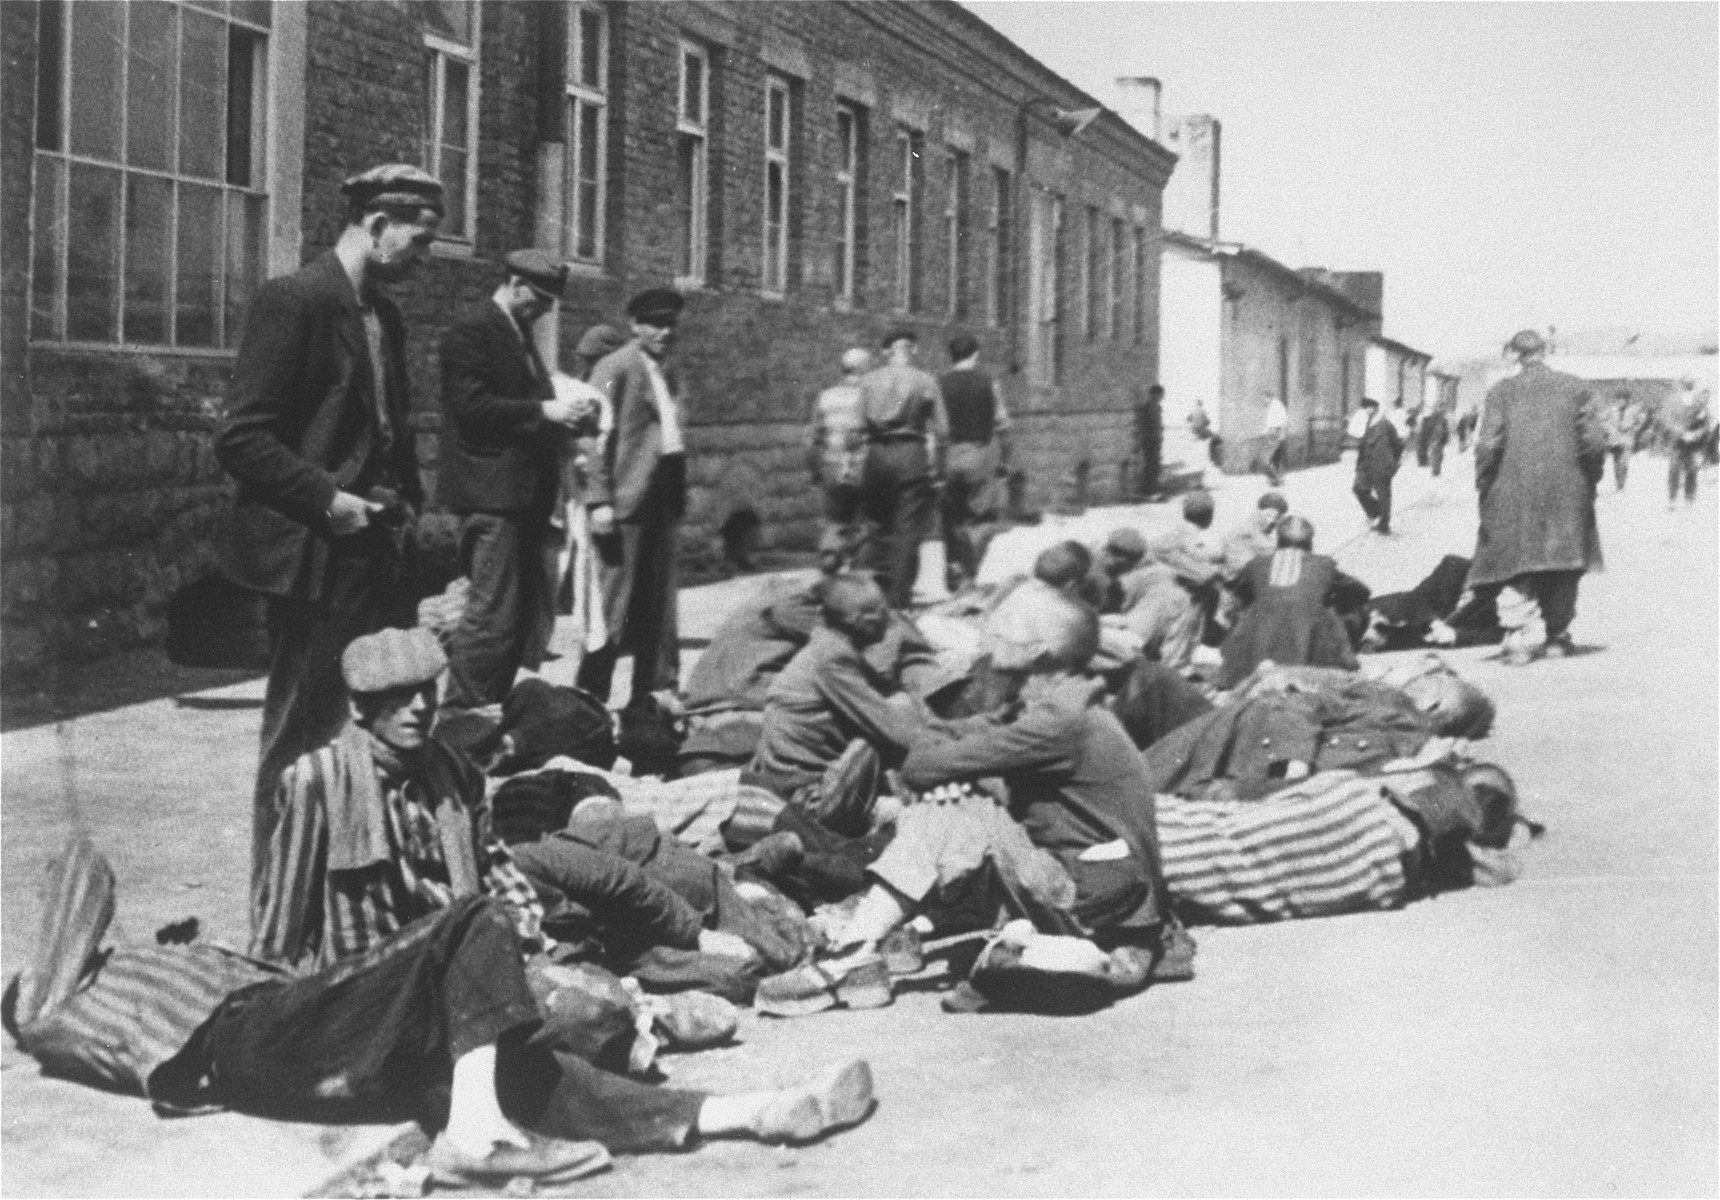 Survivors in Mauthausen rest outside a barrack after the liberation of the camp.